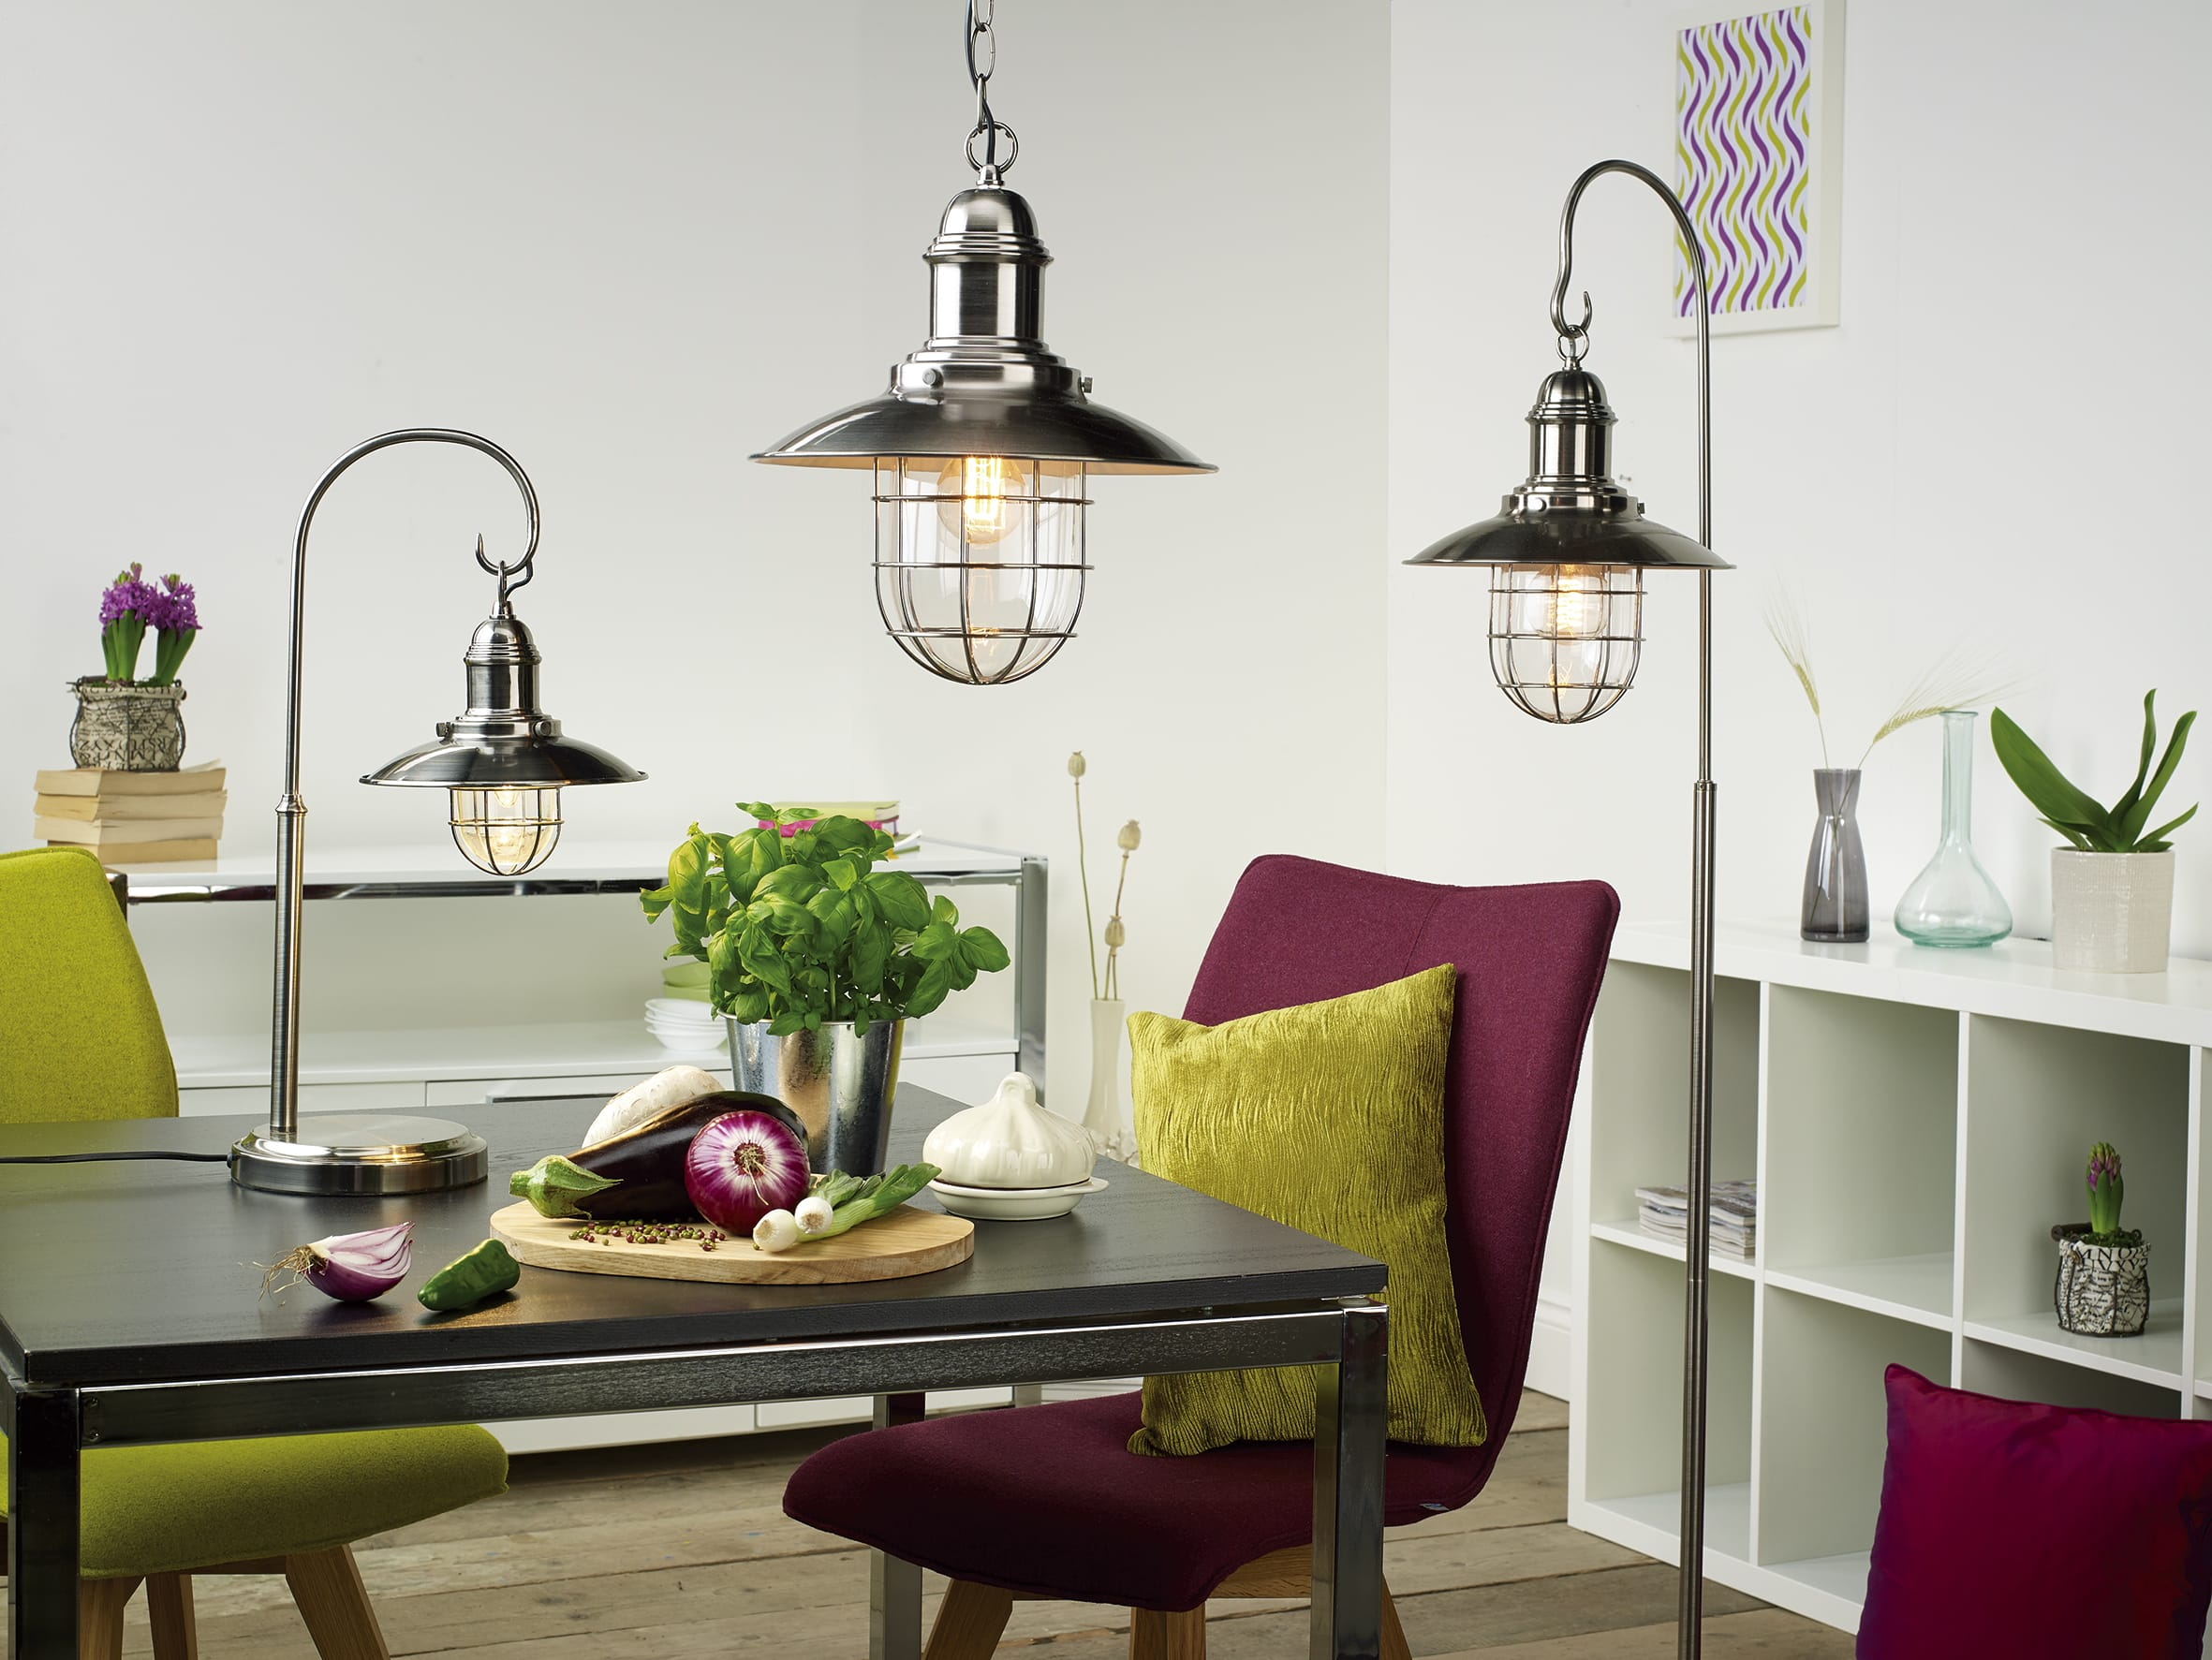 Caged Pendant light fittings on trend lighting.